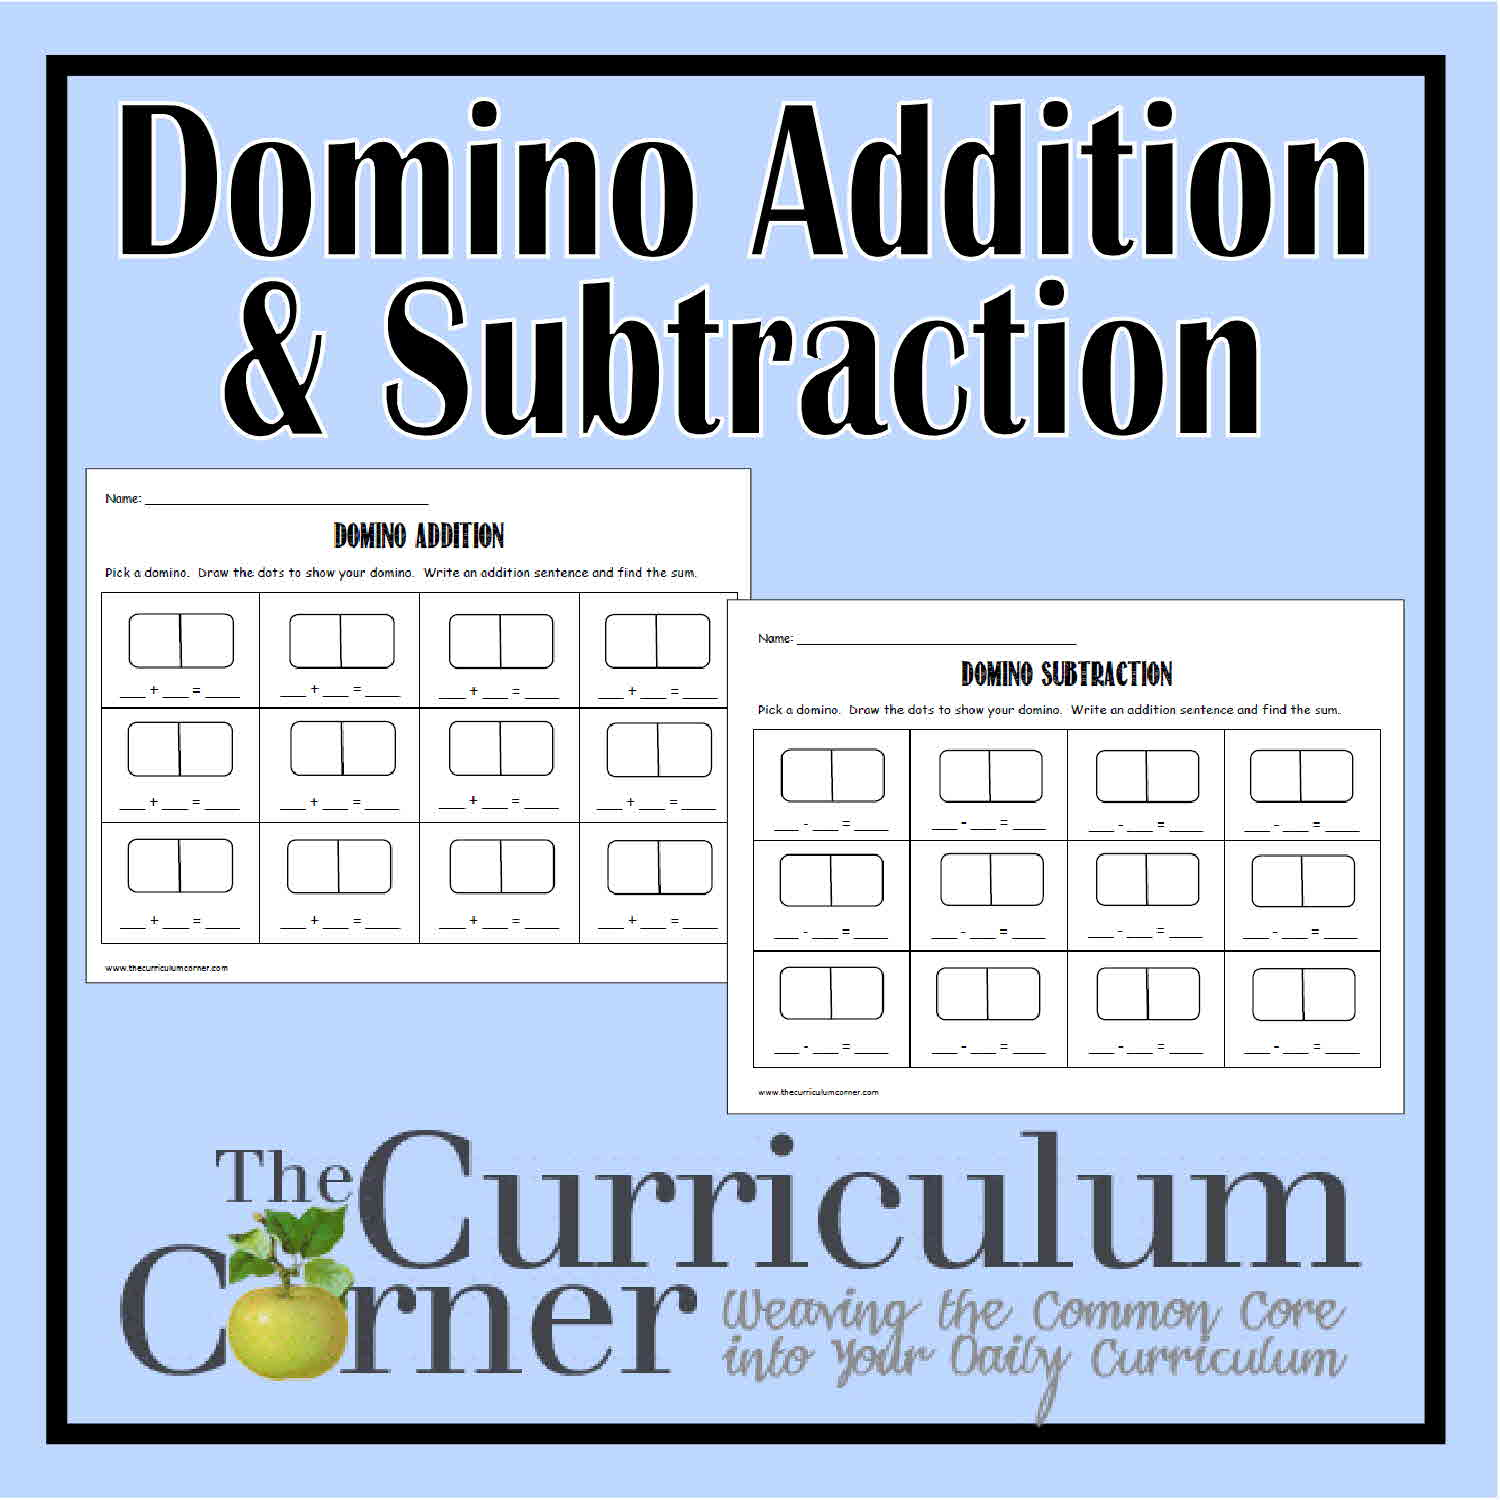 Worksheets Domino Addition Worksheet domino math addition subtraction the curriculum corner 123 and subtraction